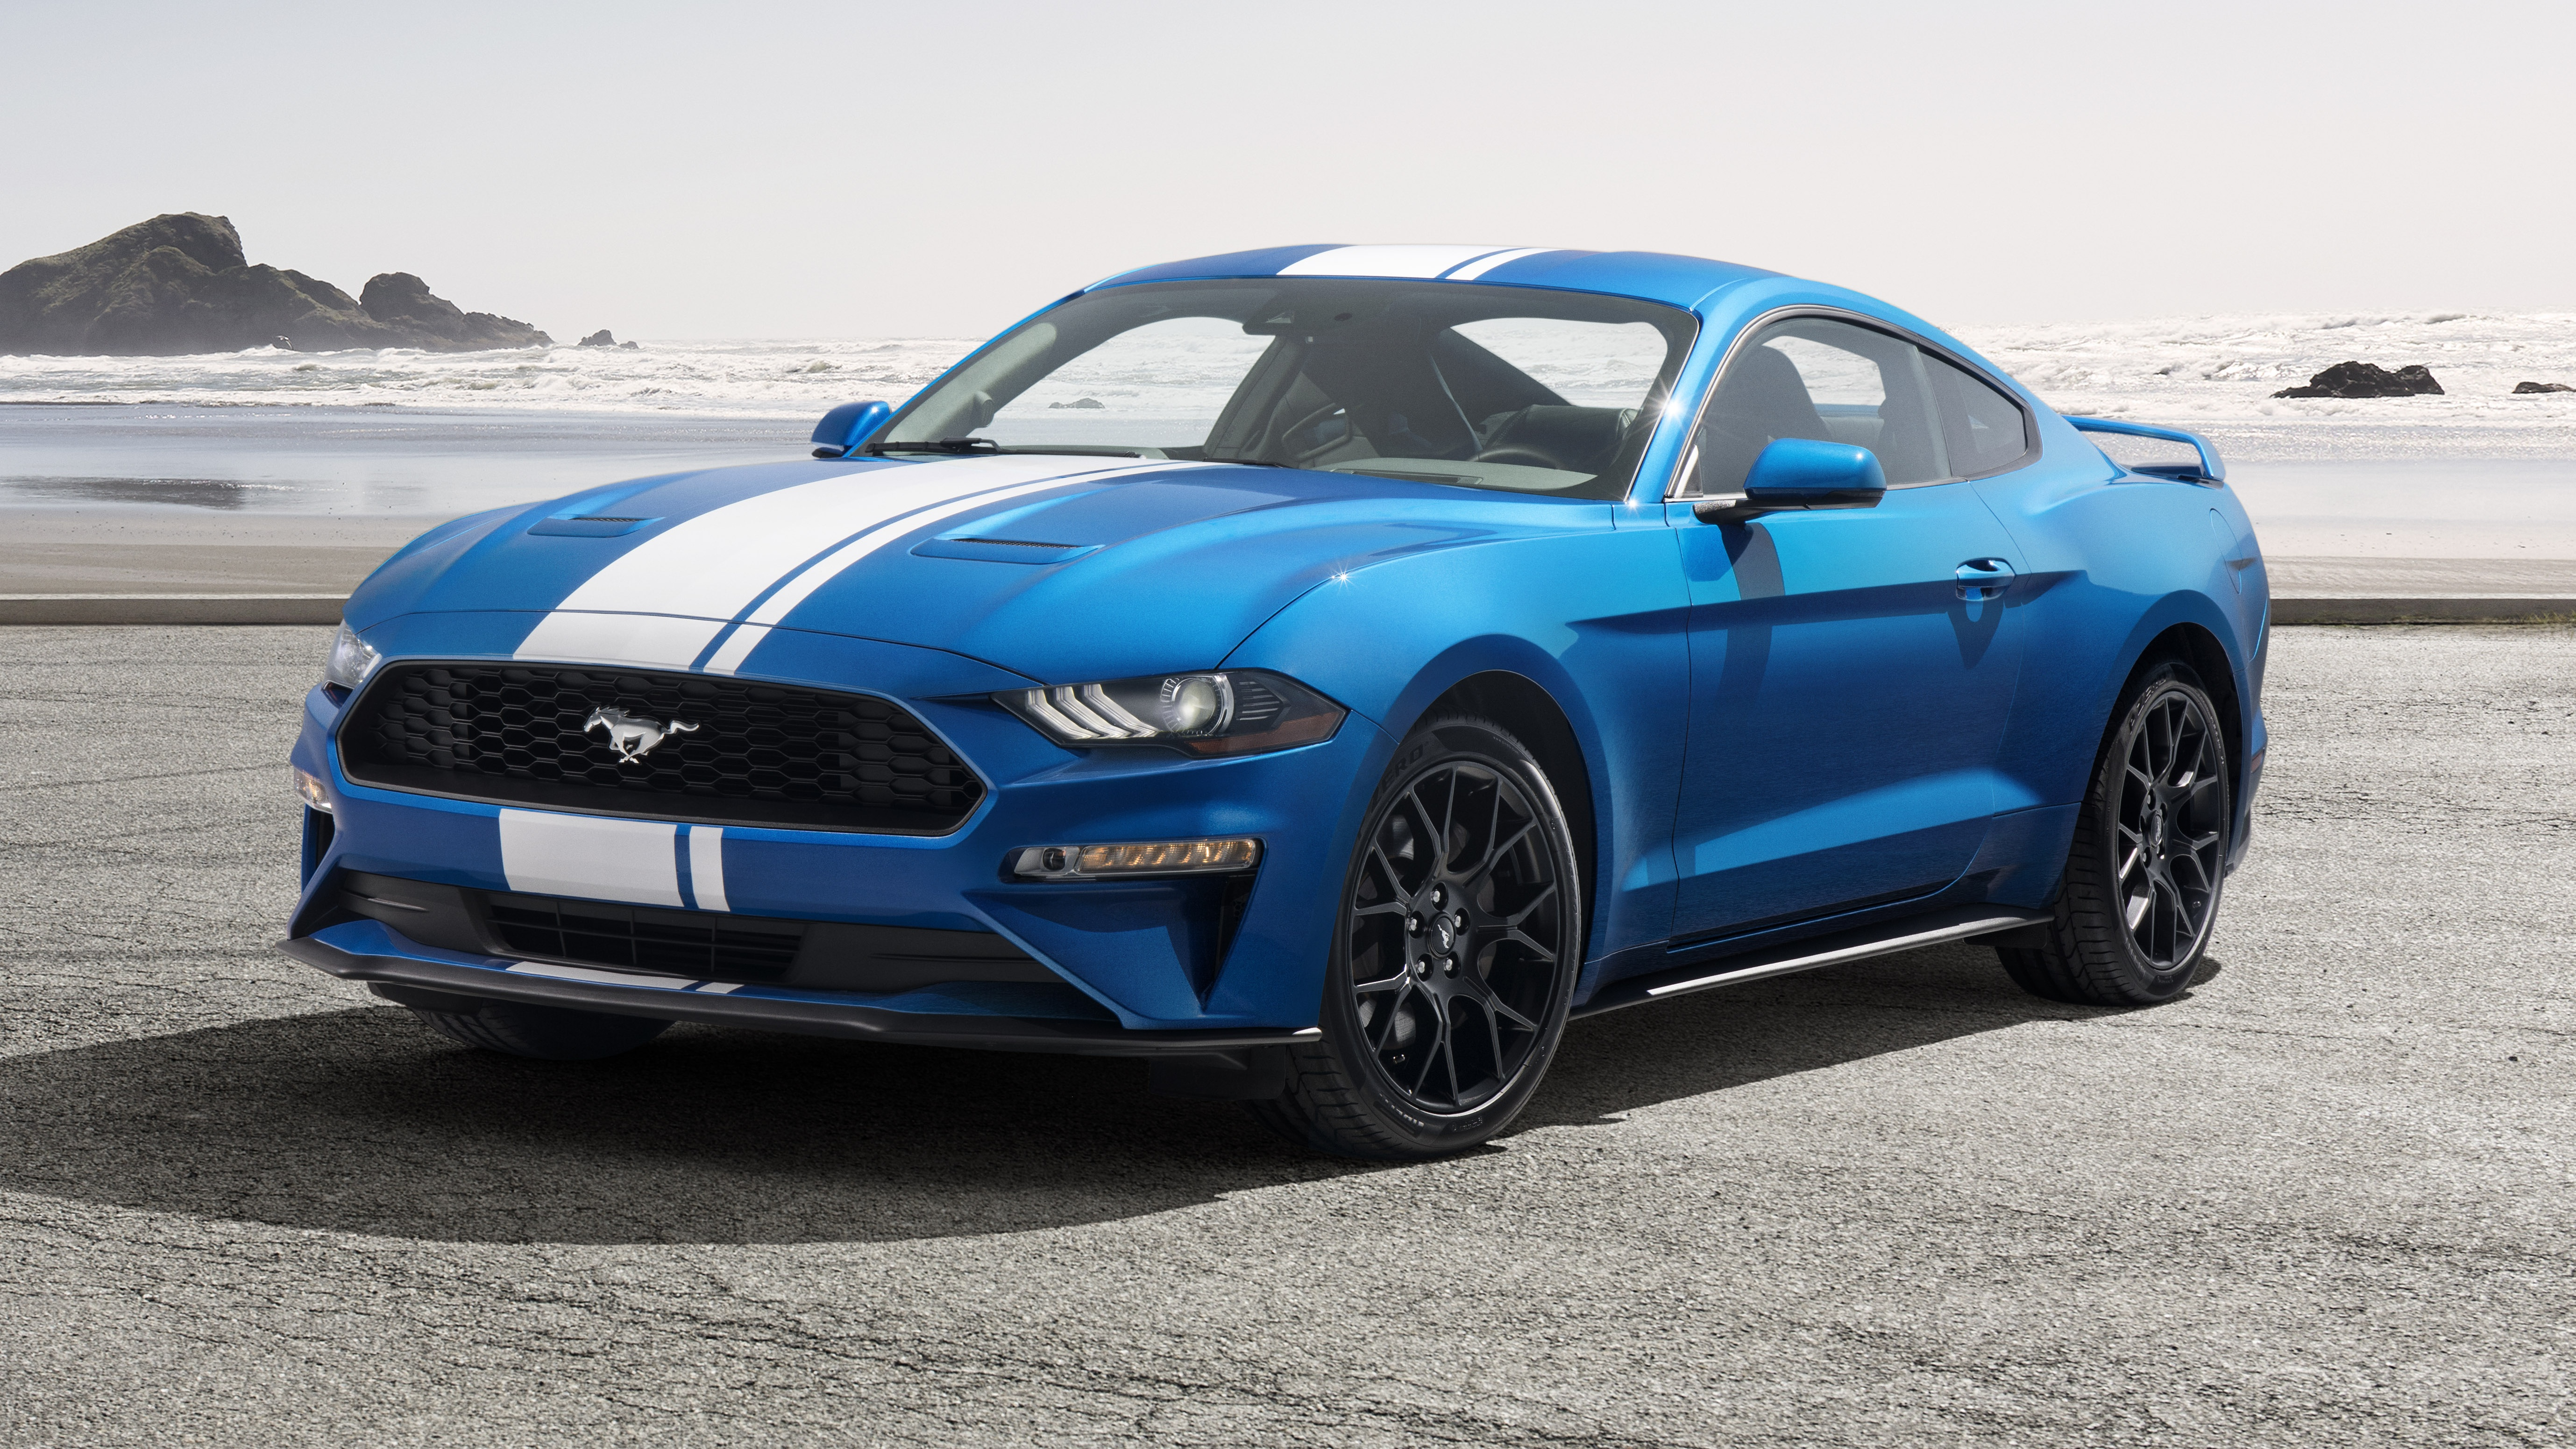 news ford gives active exhausts to 2019 mustang ecoboost. Black Bedroom Furniture Sets. Home Design Ideas